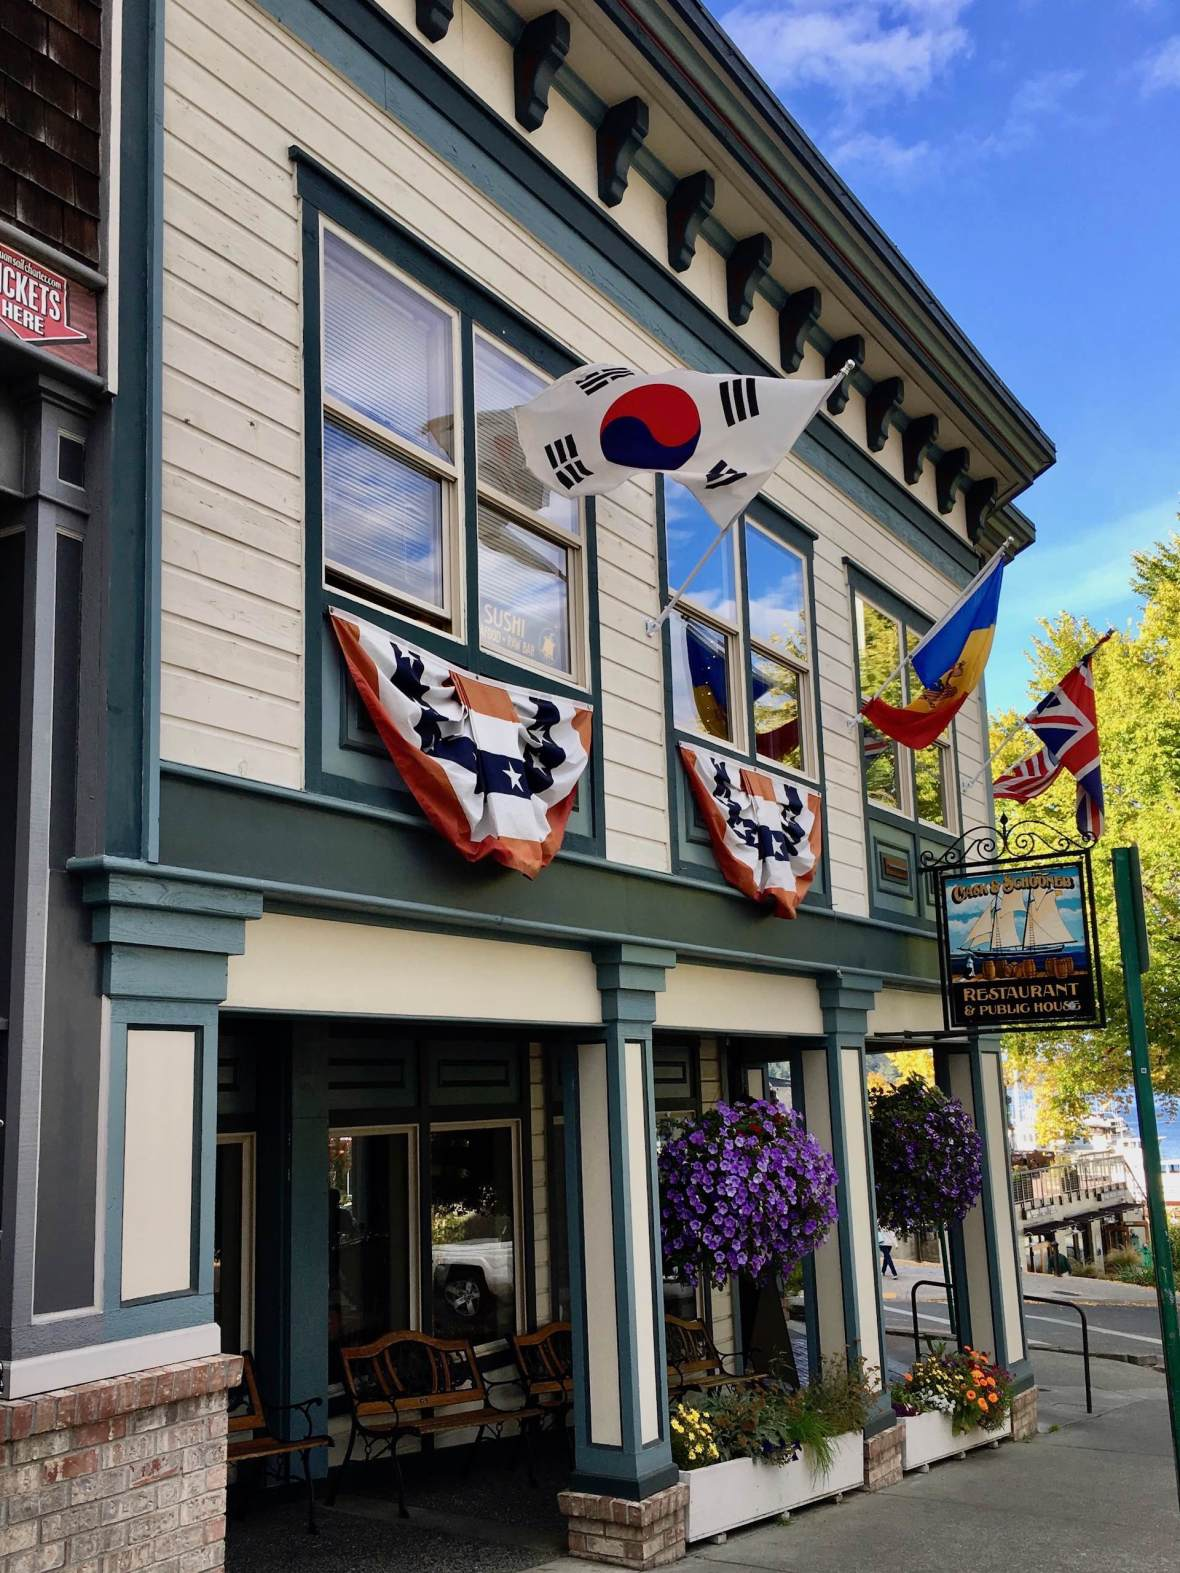 Cask & Schooner Restaurant & Public House in Friday Harbor, Washington